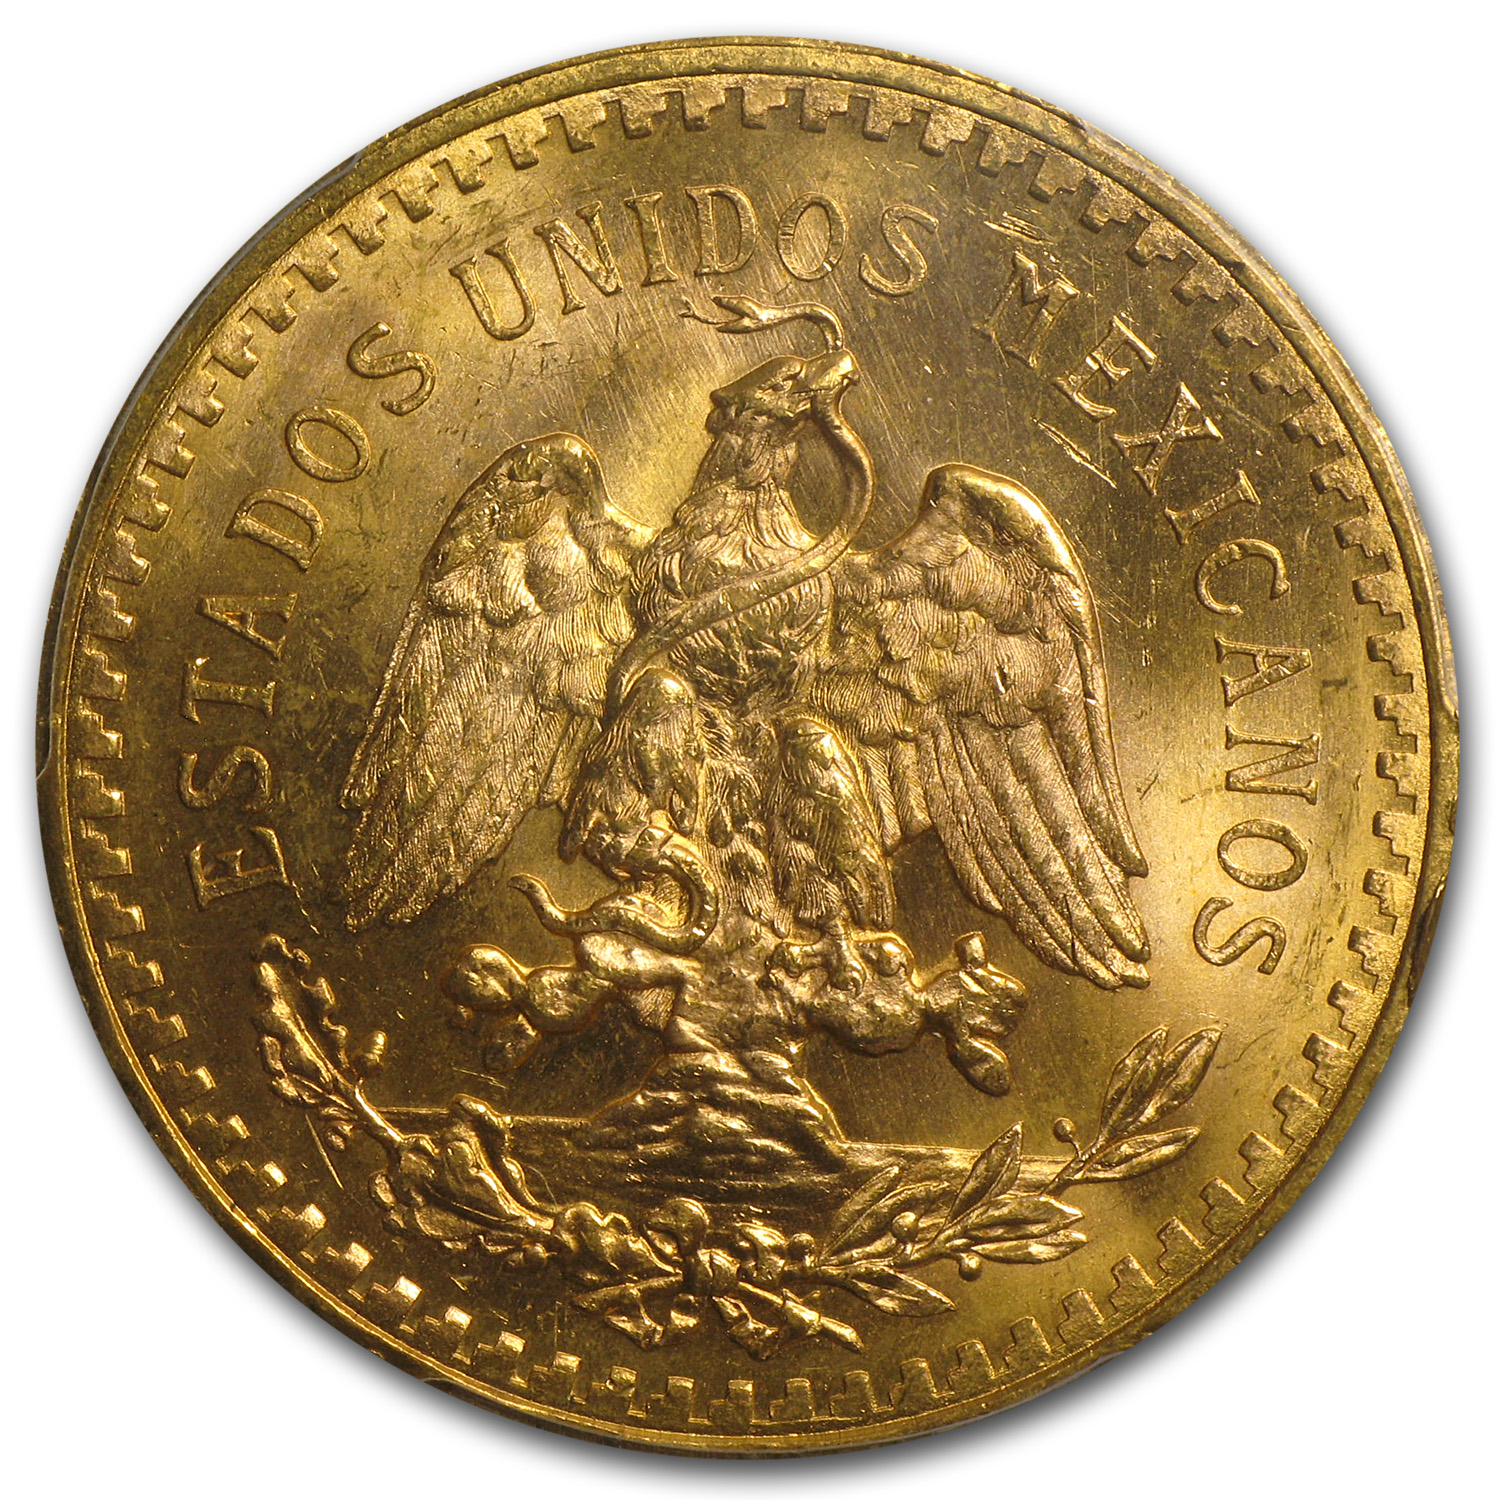 Mexico 1931 50 Pesos Gold Coin - MS-64+ PCGS